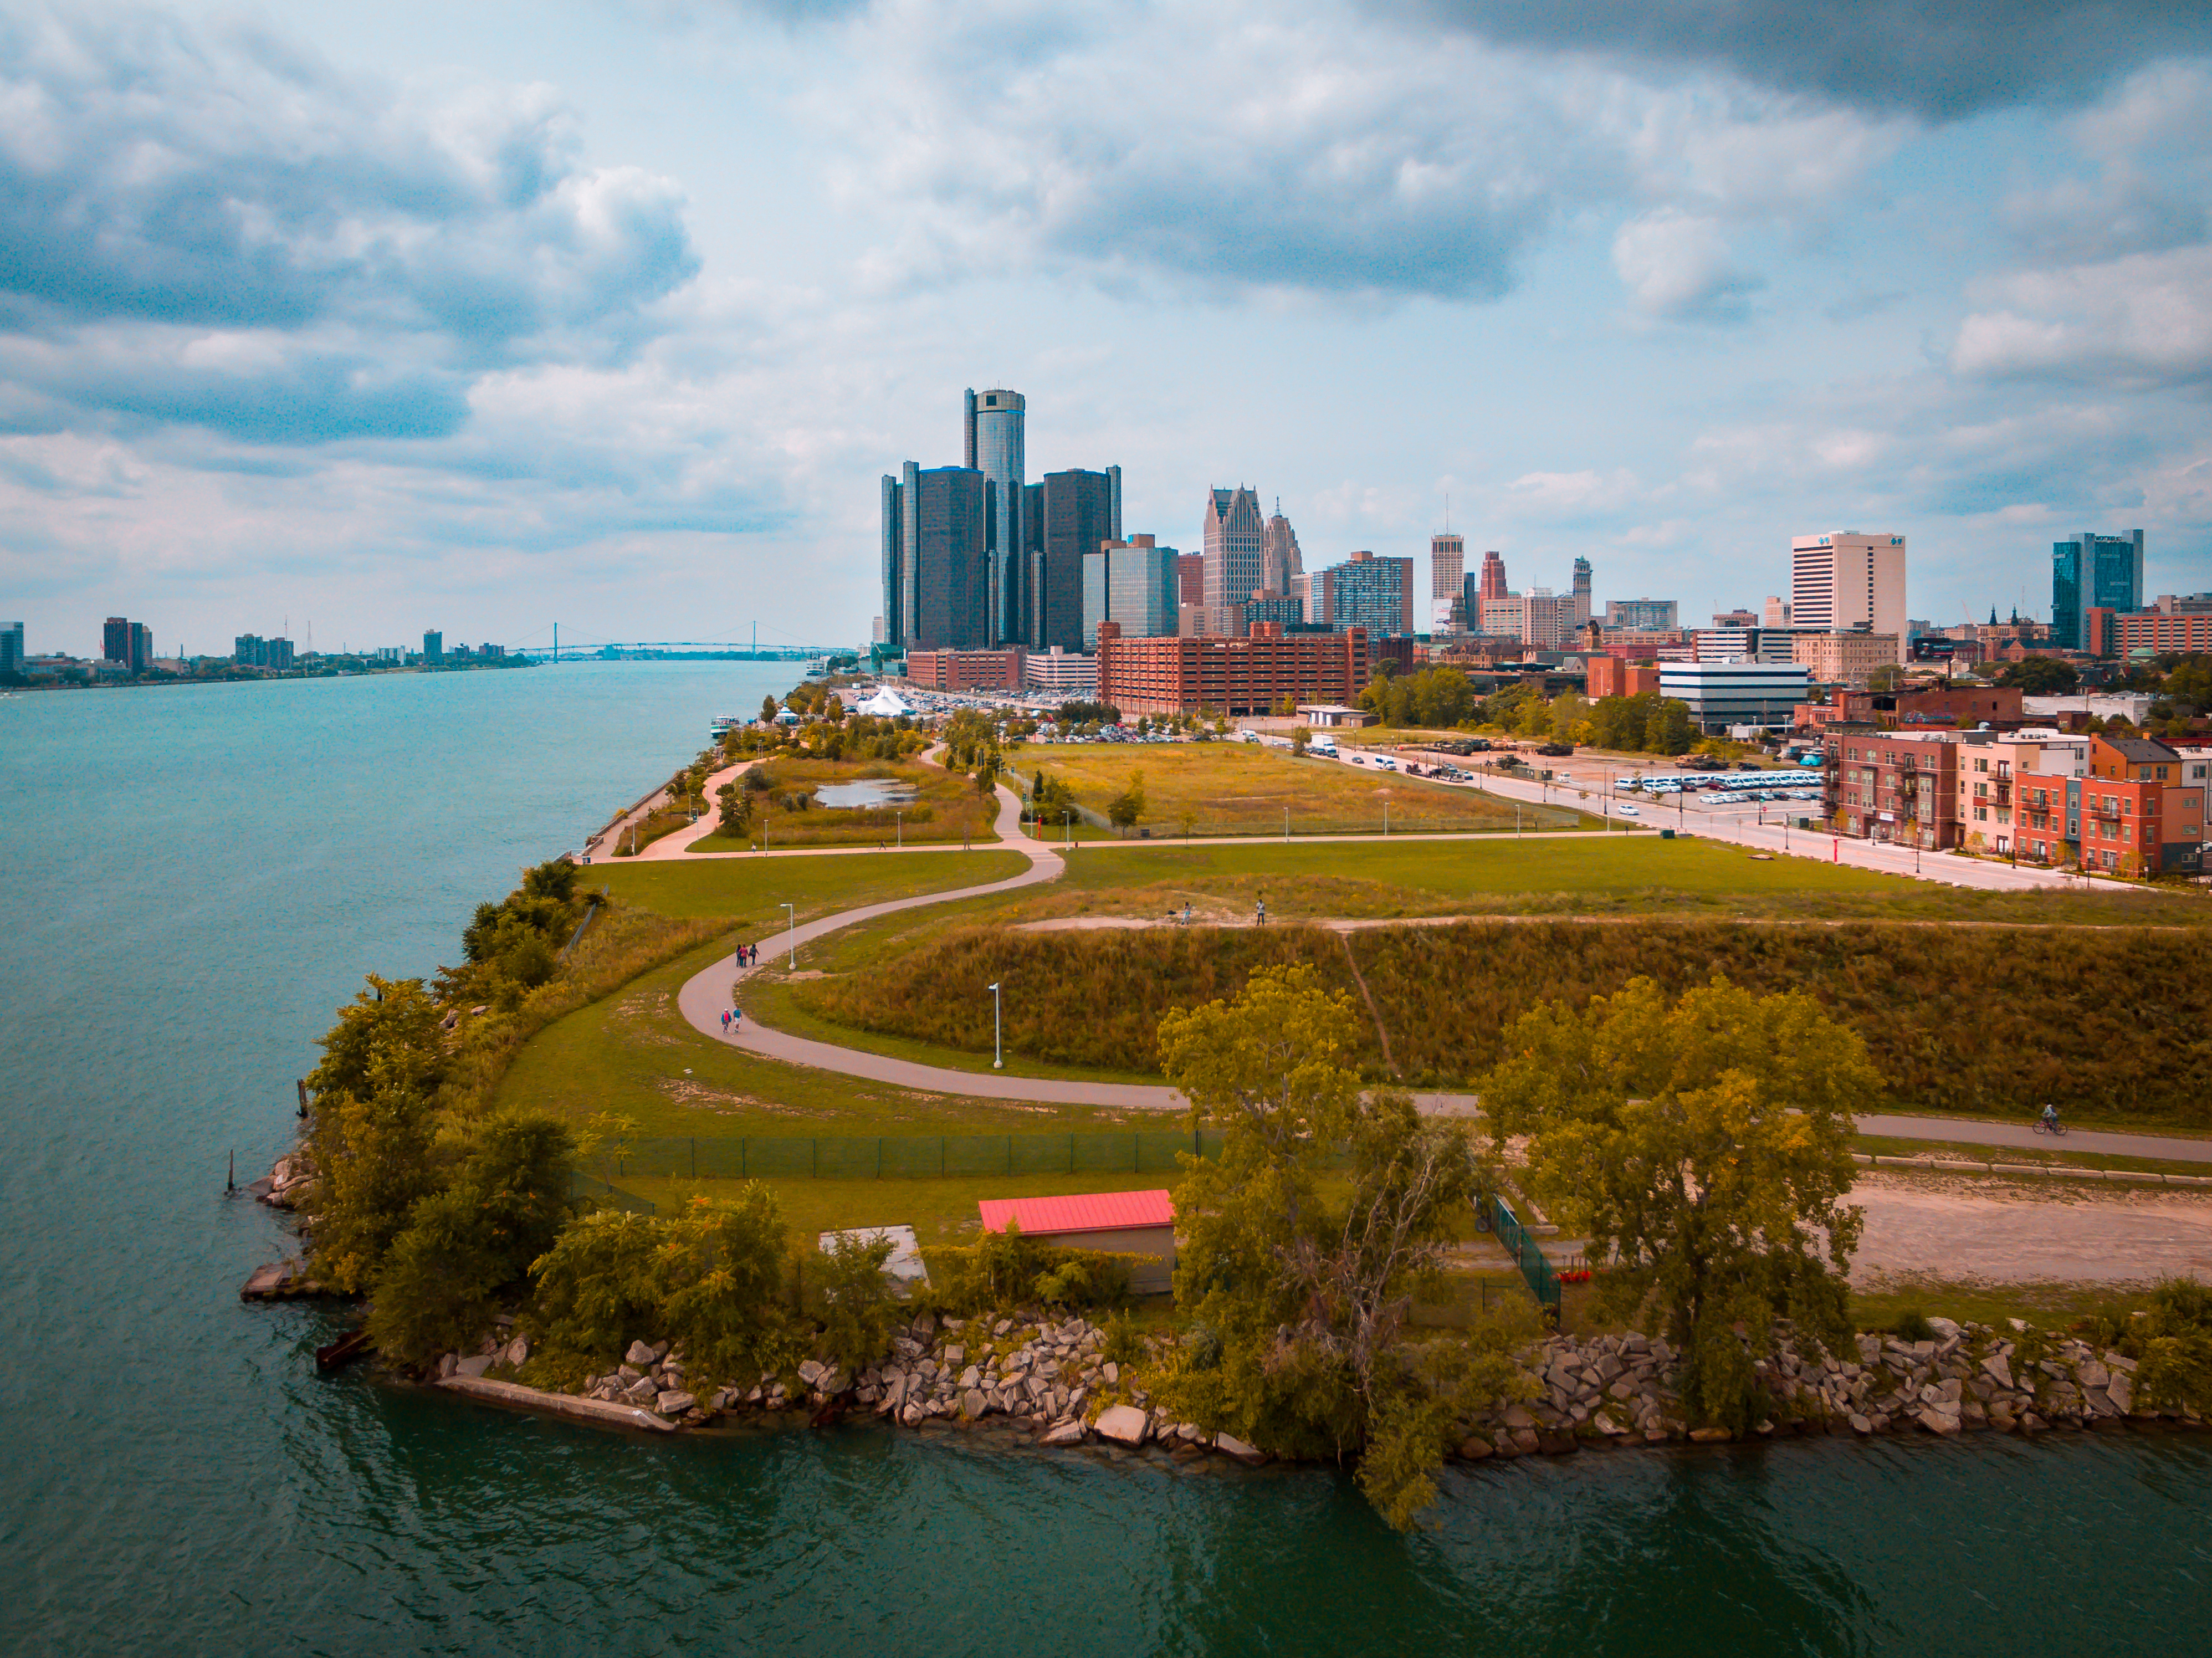 Detroit Getting Hotspots for Students